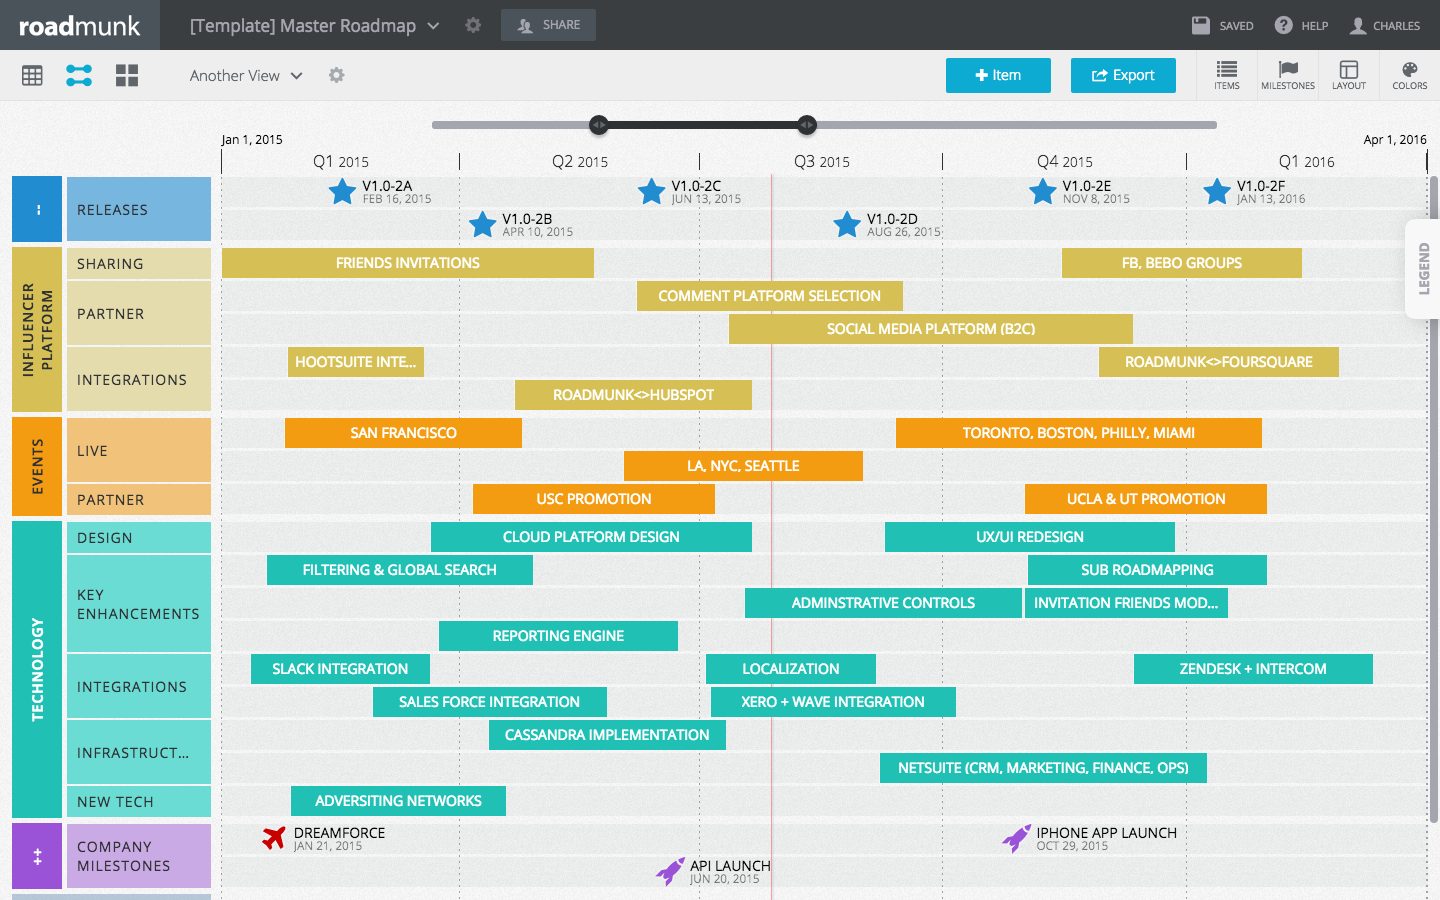 Set up a color scheme in the Timeline view for different roadmaps